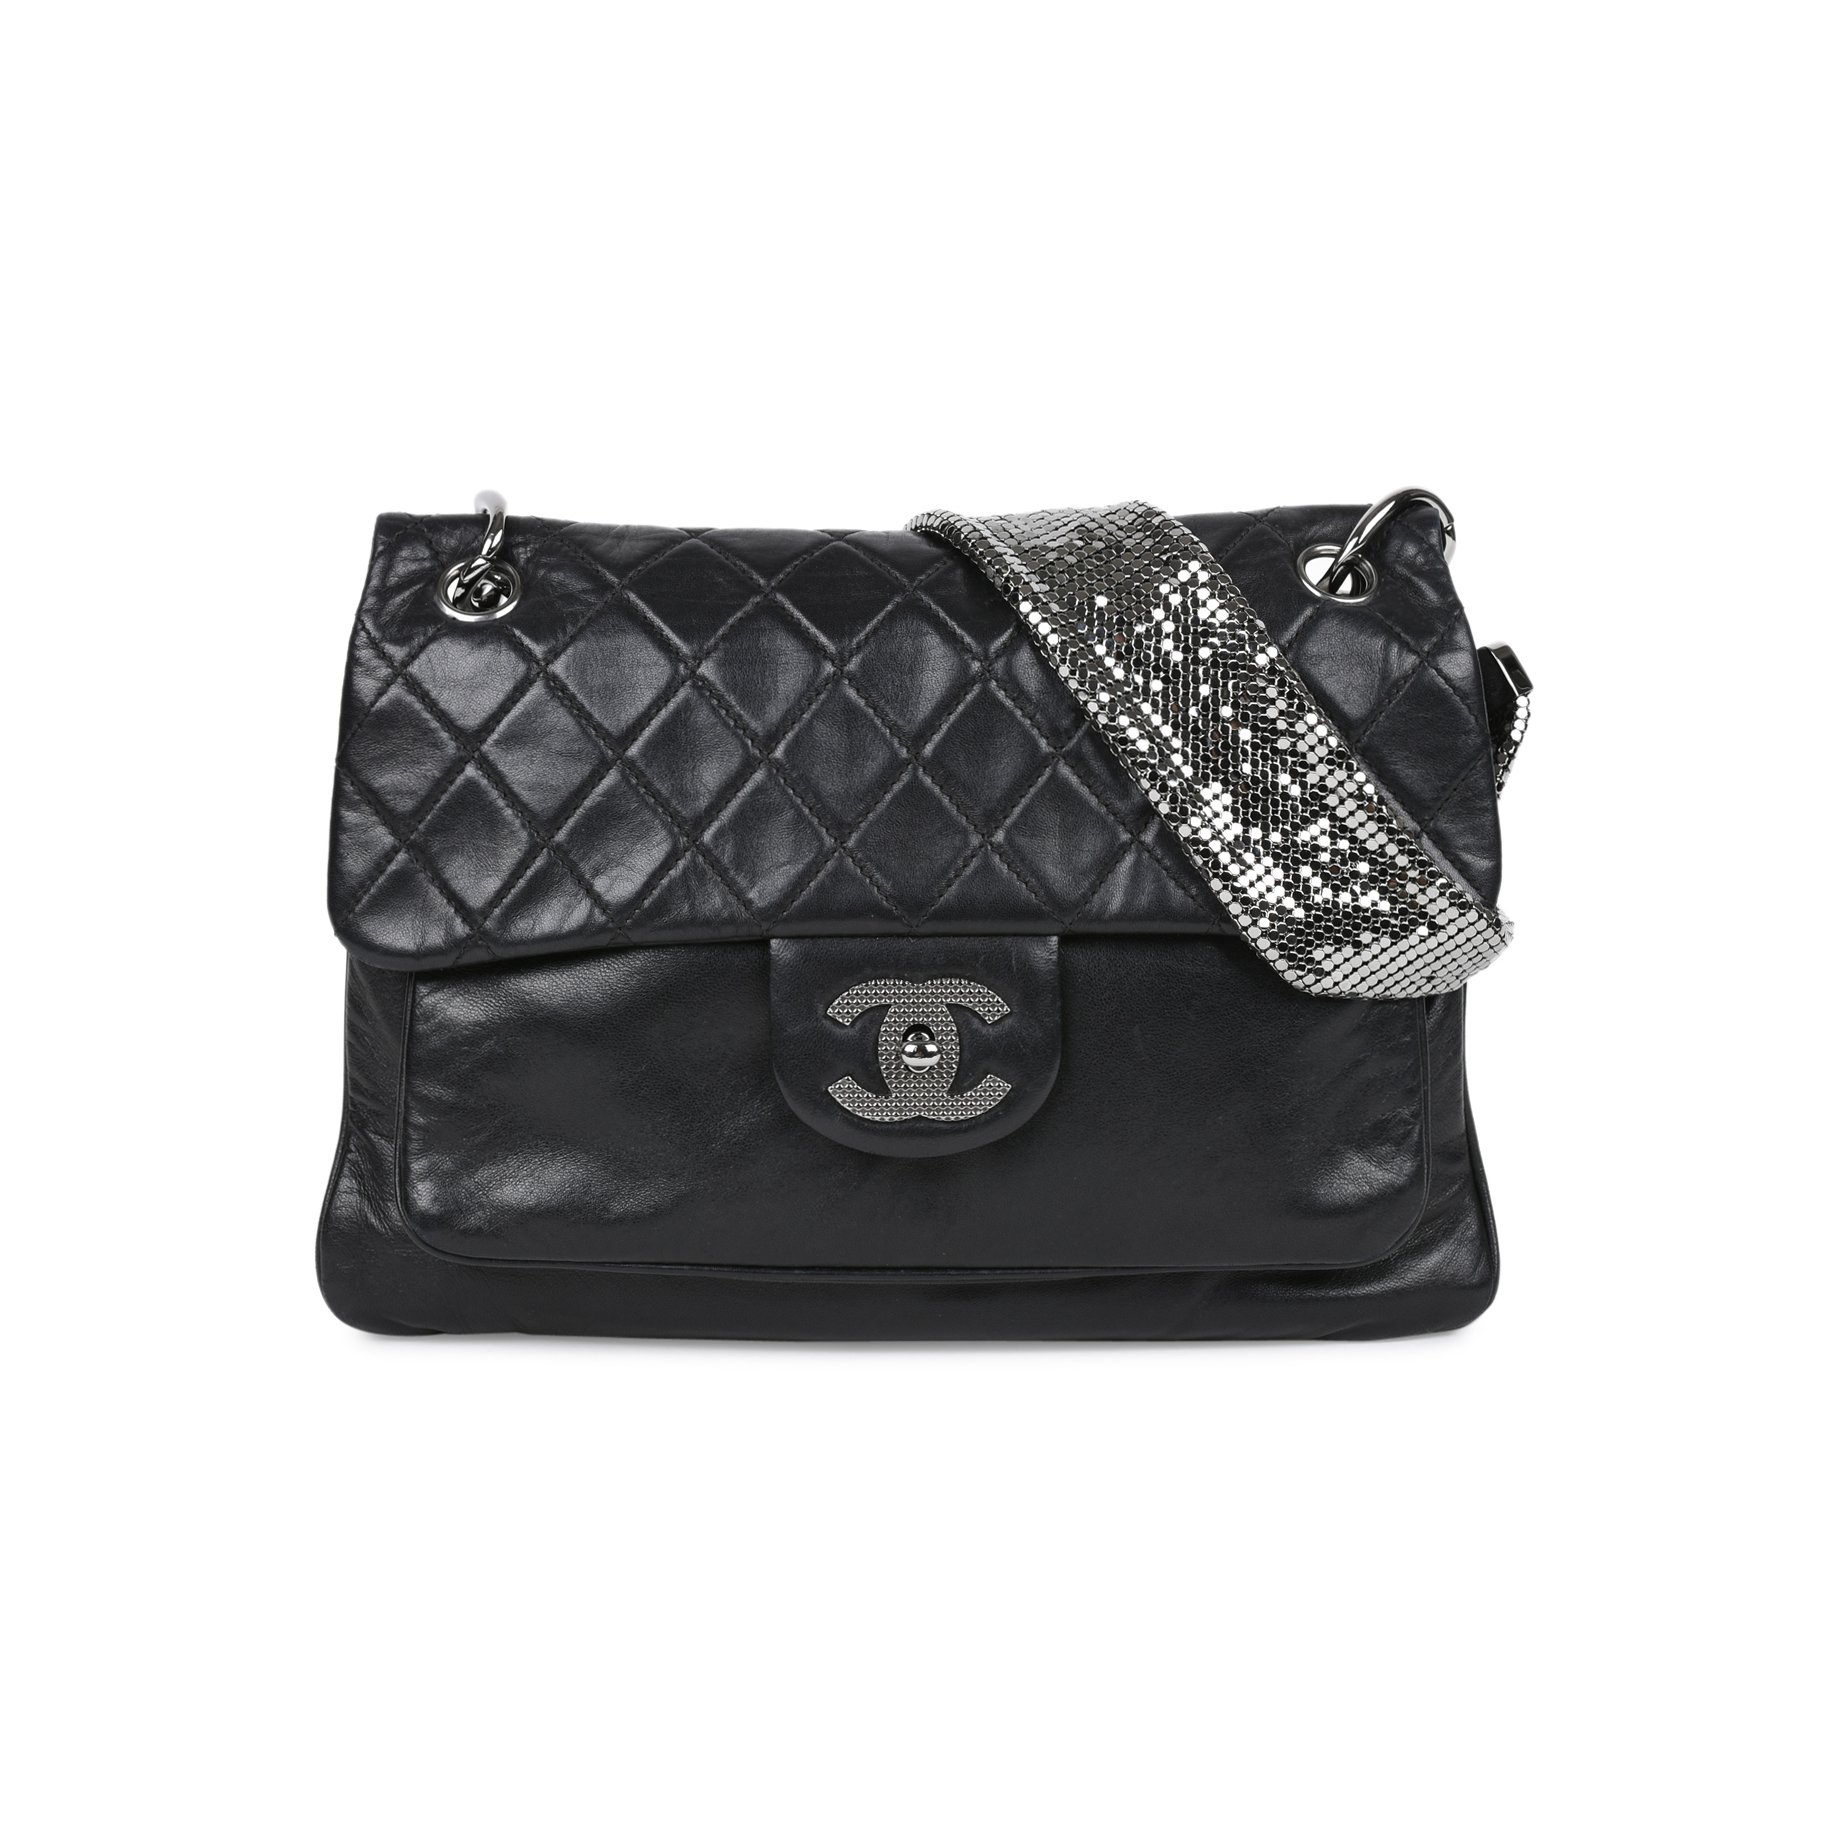 1735fe512c97 Authentic Second Hand Chanel Lambskin and Chainmail Flap Bag  (PSS-515-00010) | THE FIFTH COLLECTION